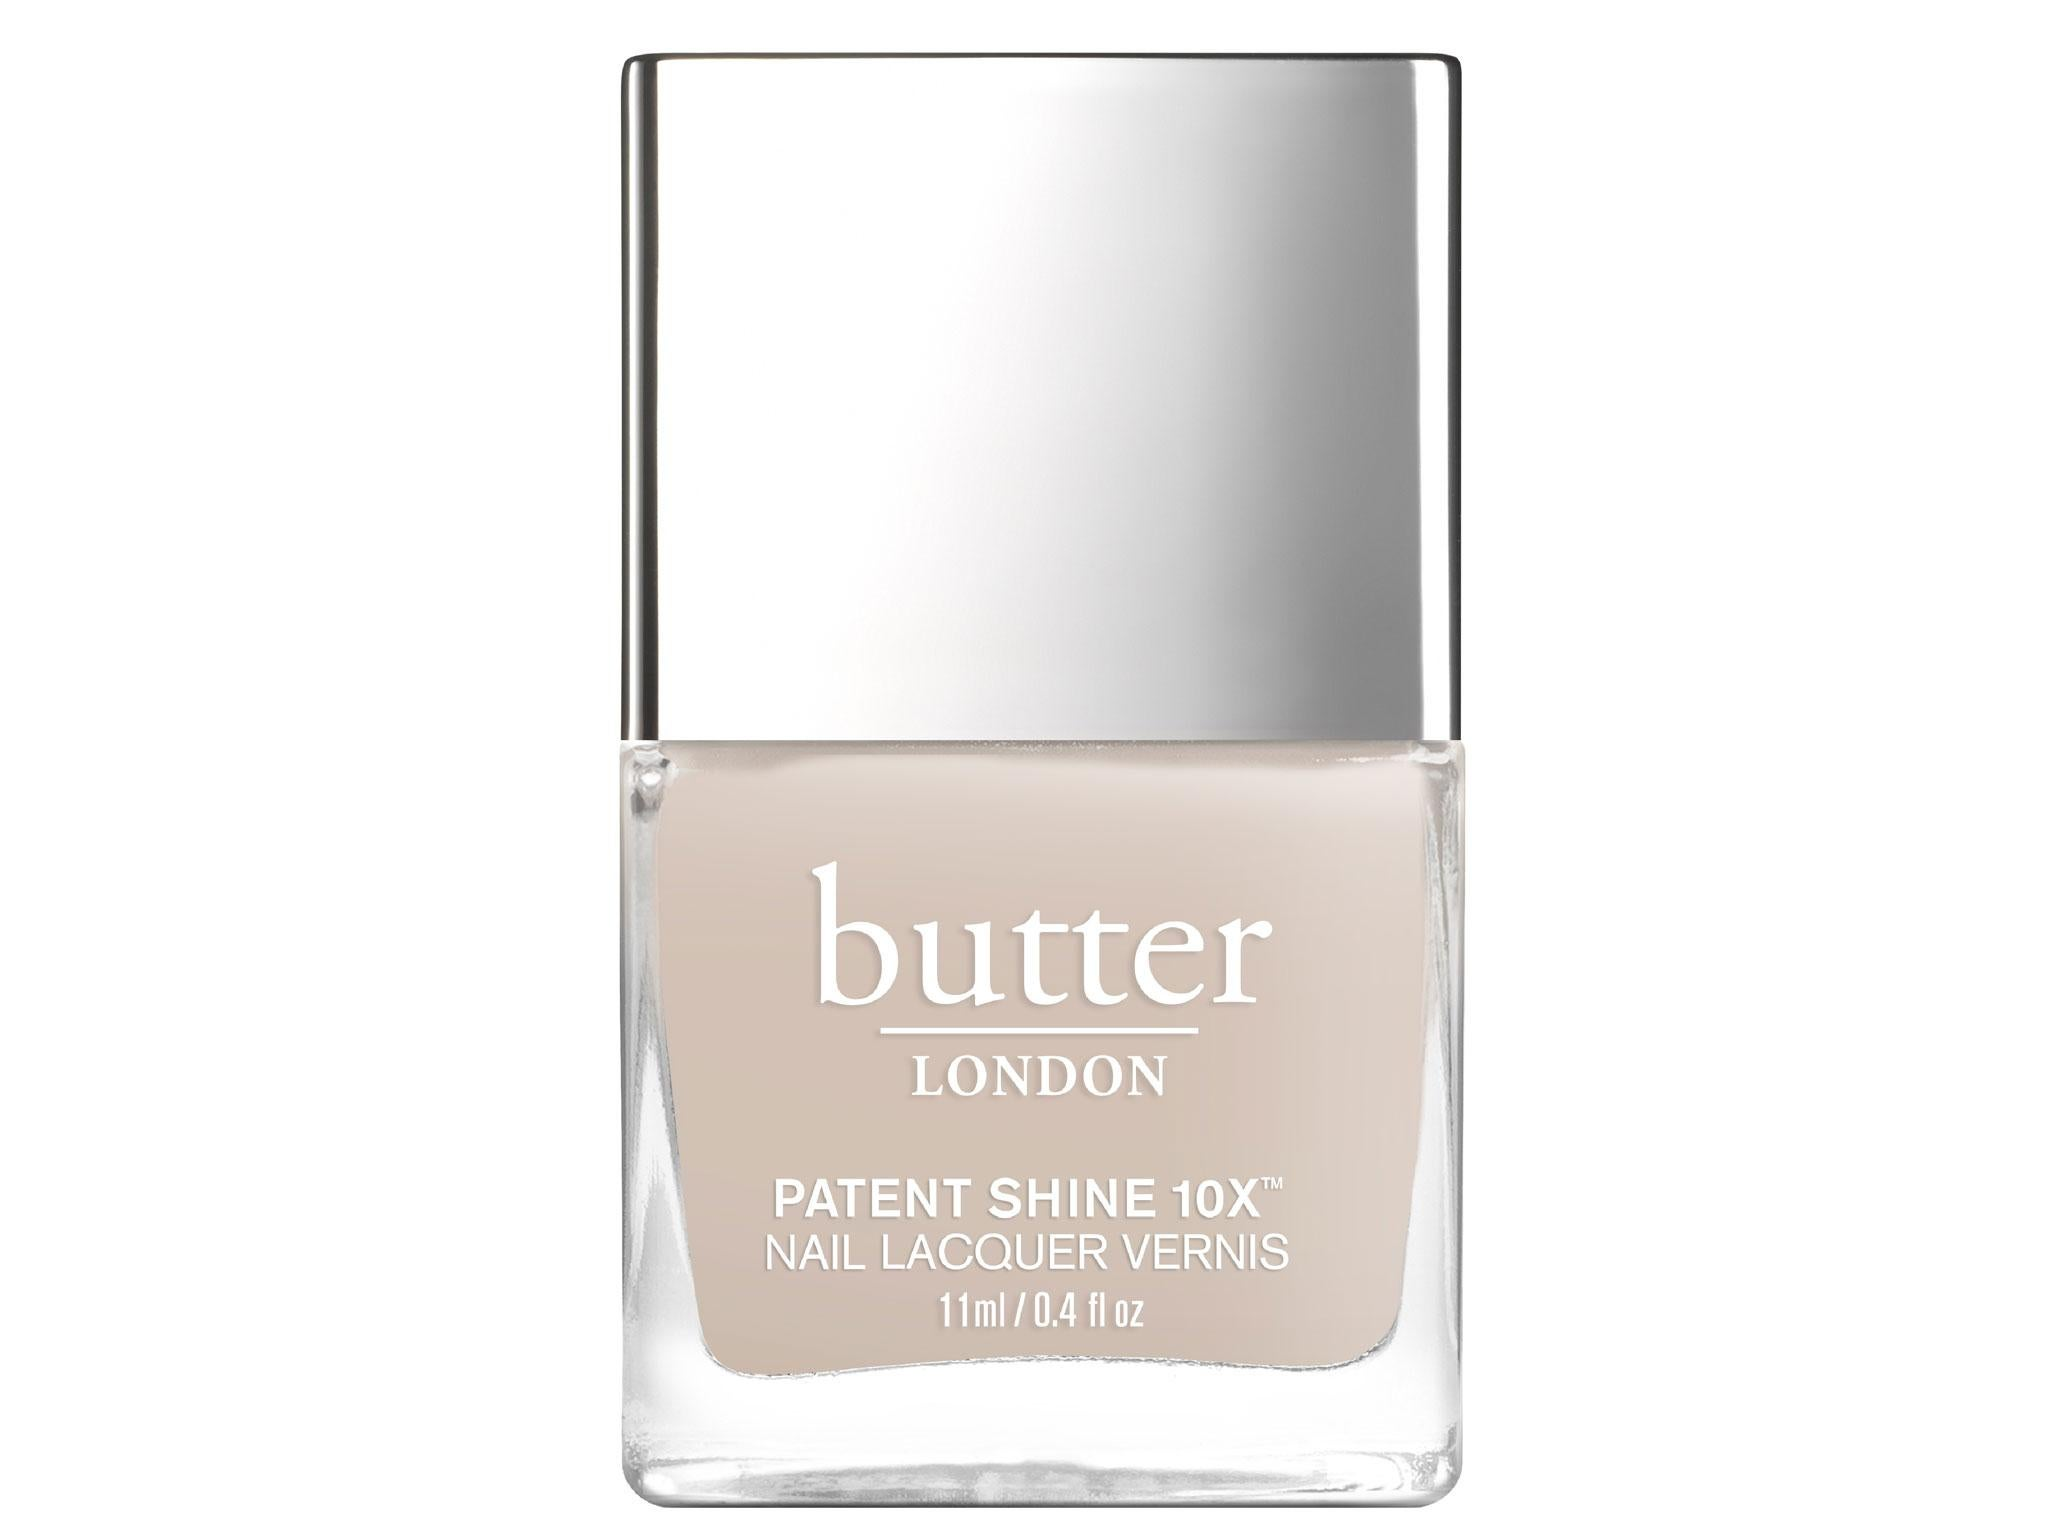 10 Best Vegan And Non Toxic Nail Polish Brands The Independent